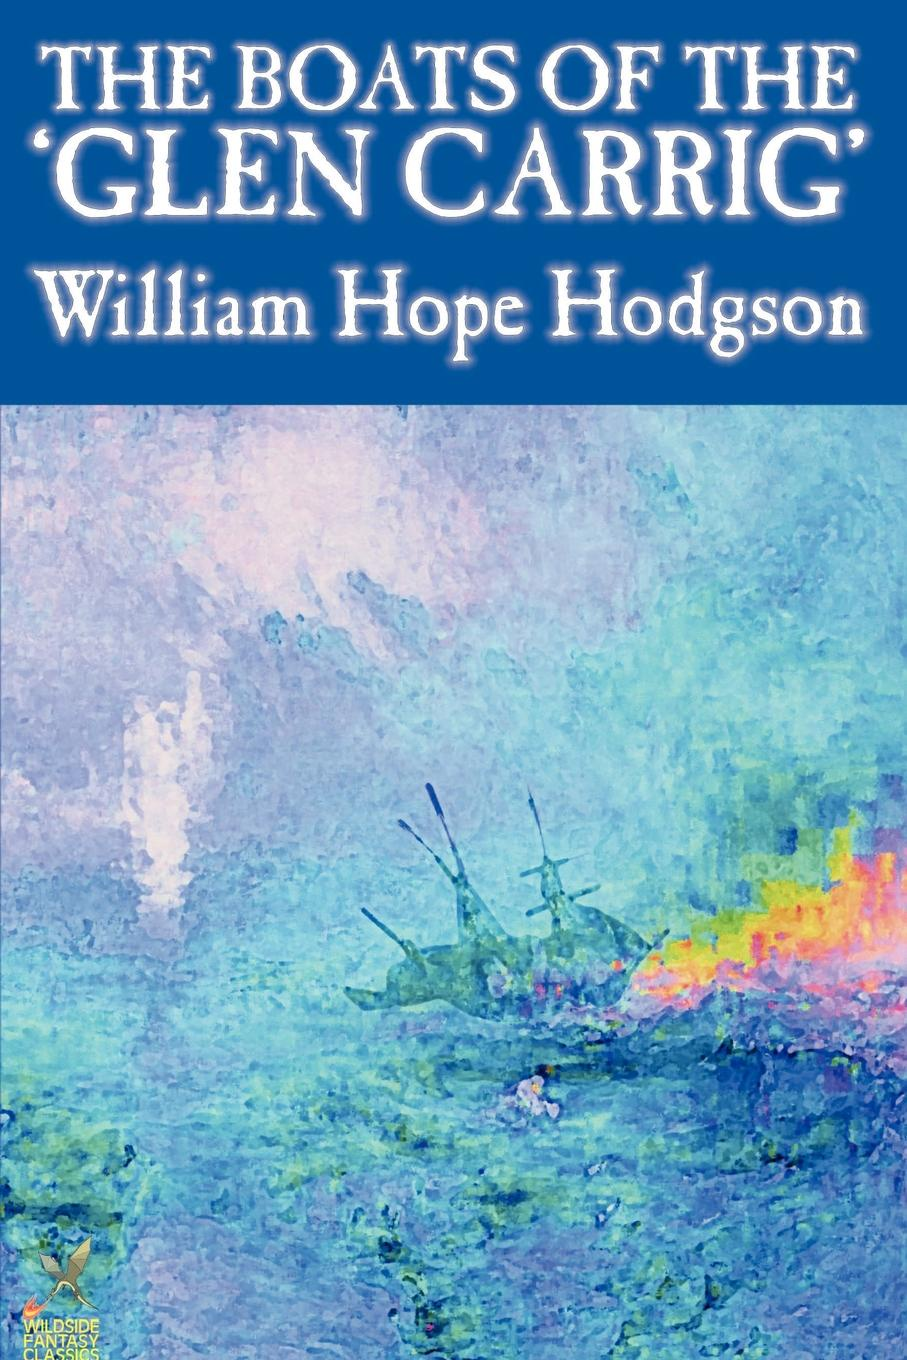 William Hope Hodgson The Boats of the 'Glen Carrig' by William Hope Hodgson, Fiction, Action & Adventure william hope hodgson the boats of the glen carrig by william hope hodgson fiction action